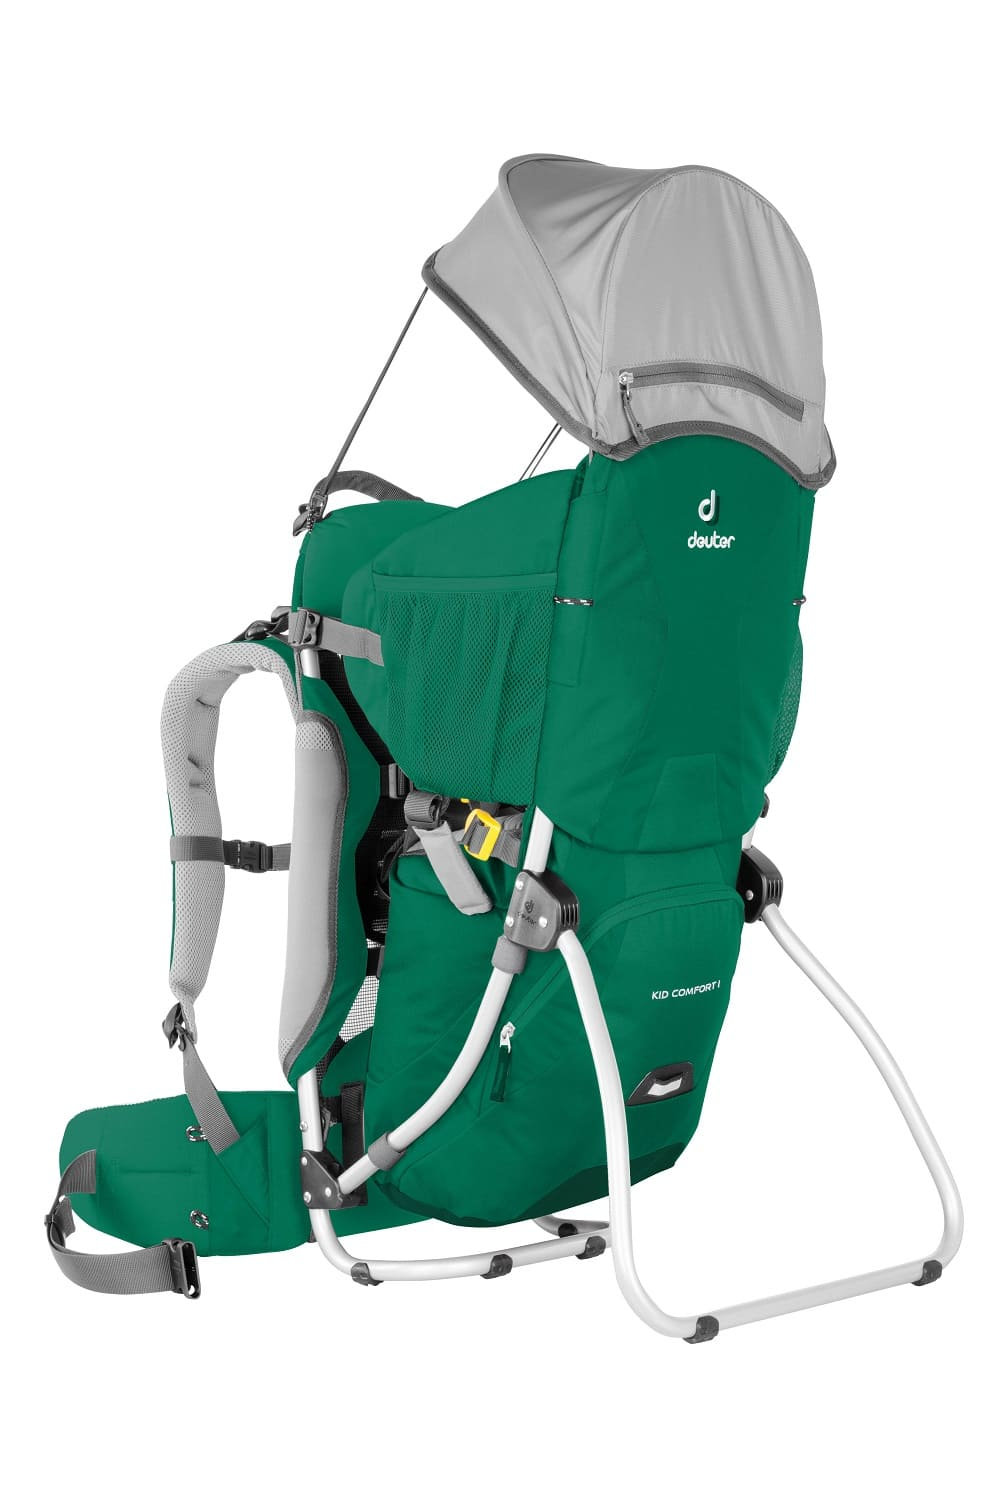 DEUTER KID COMFORT I - ALPINEGREEN